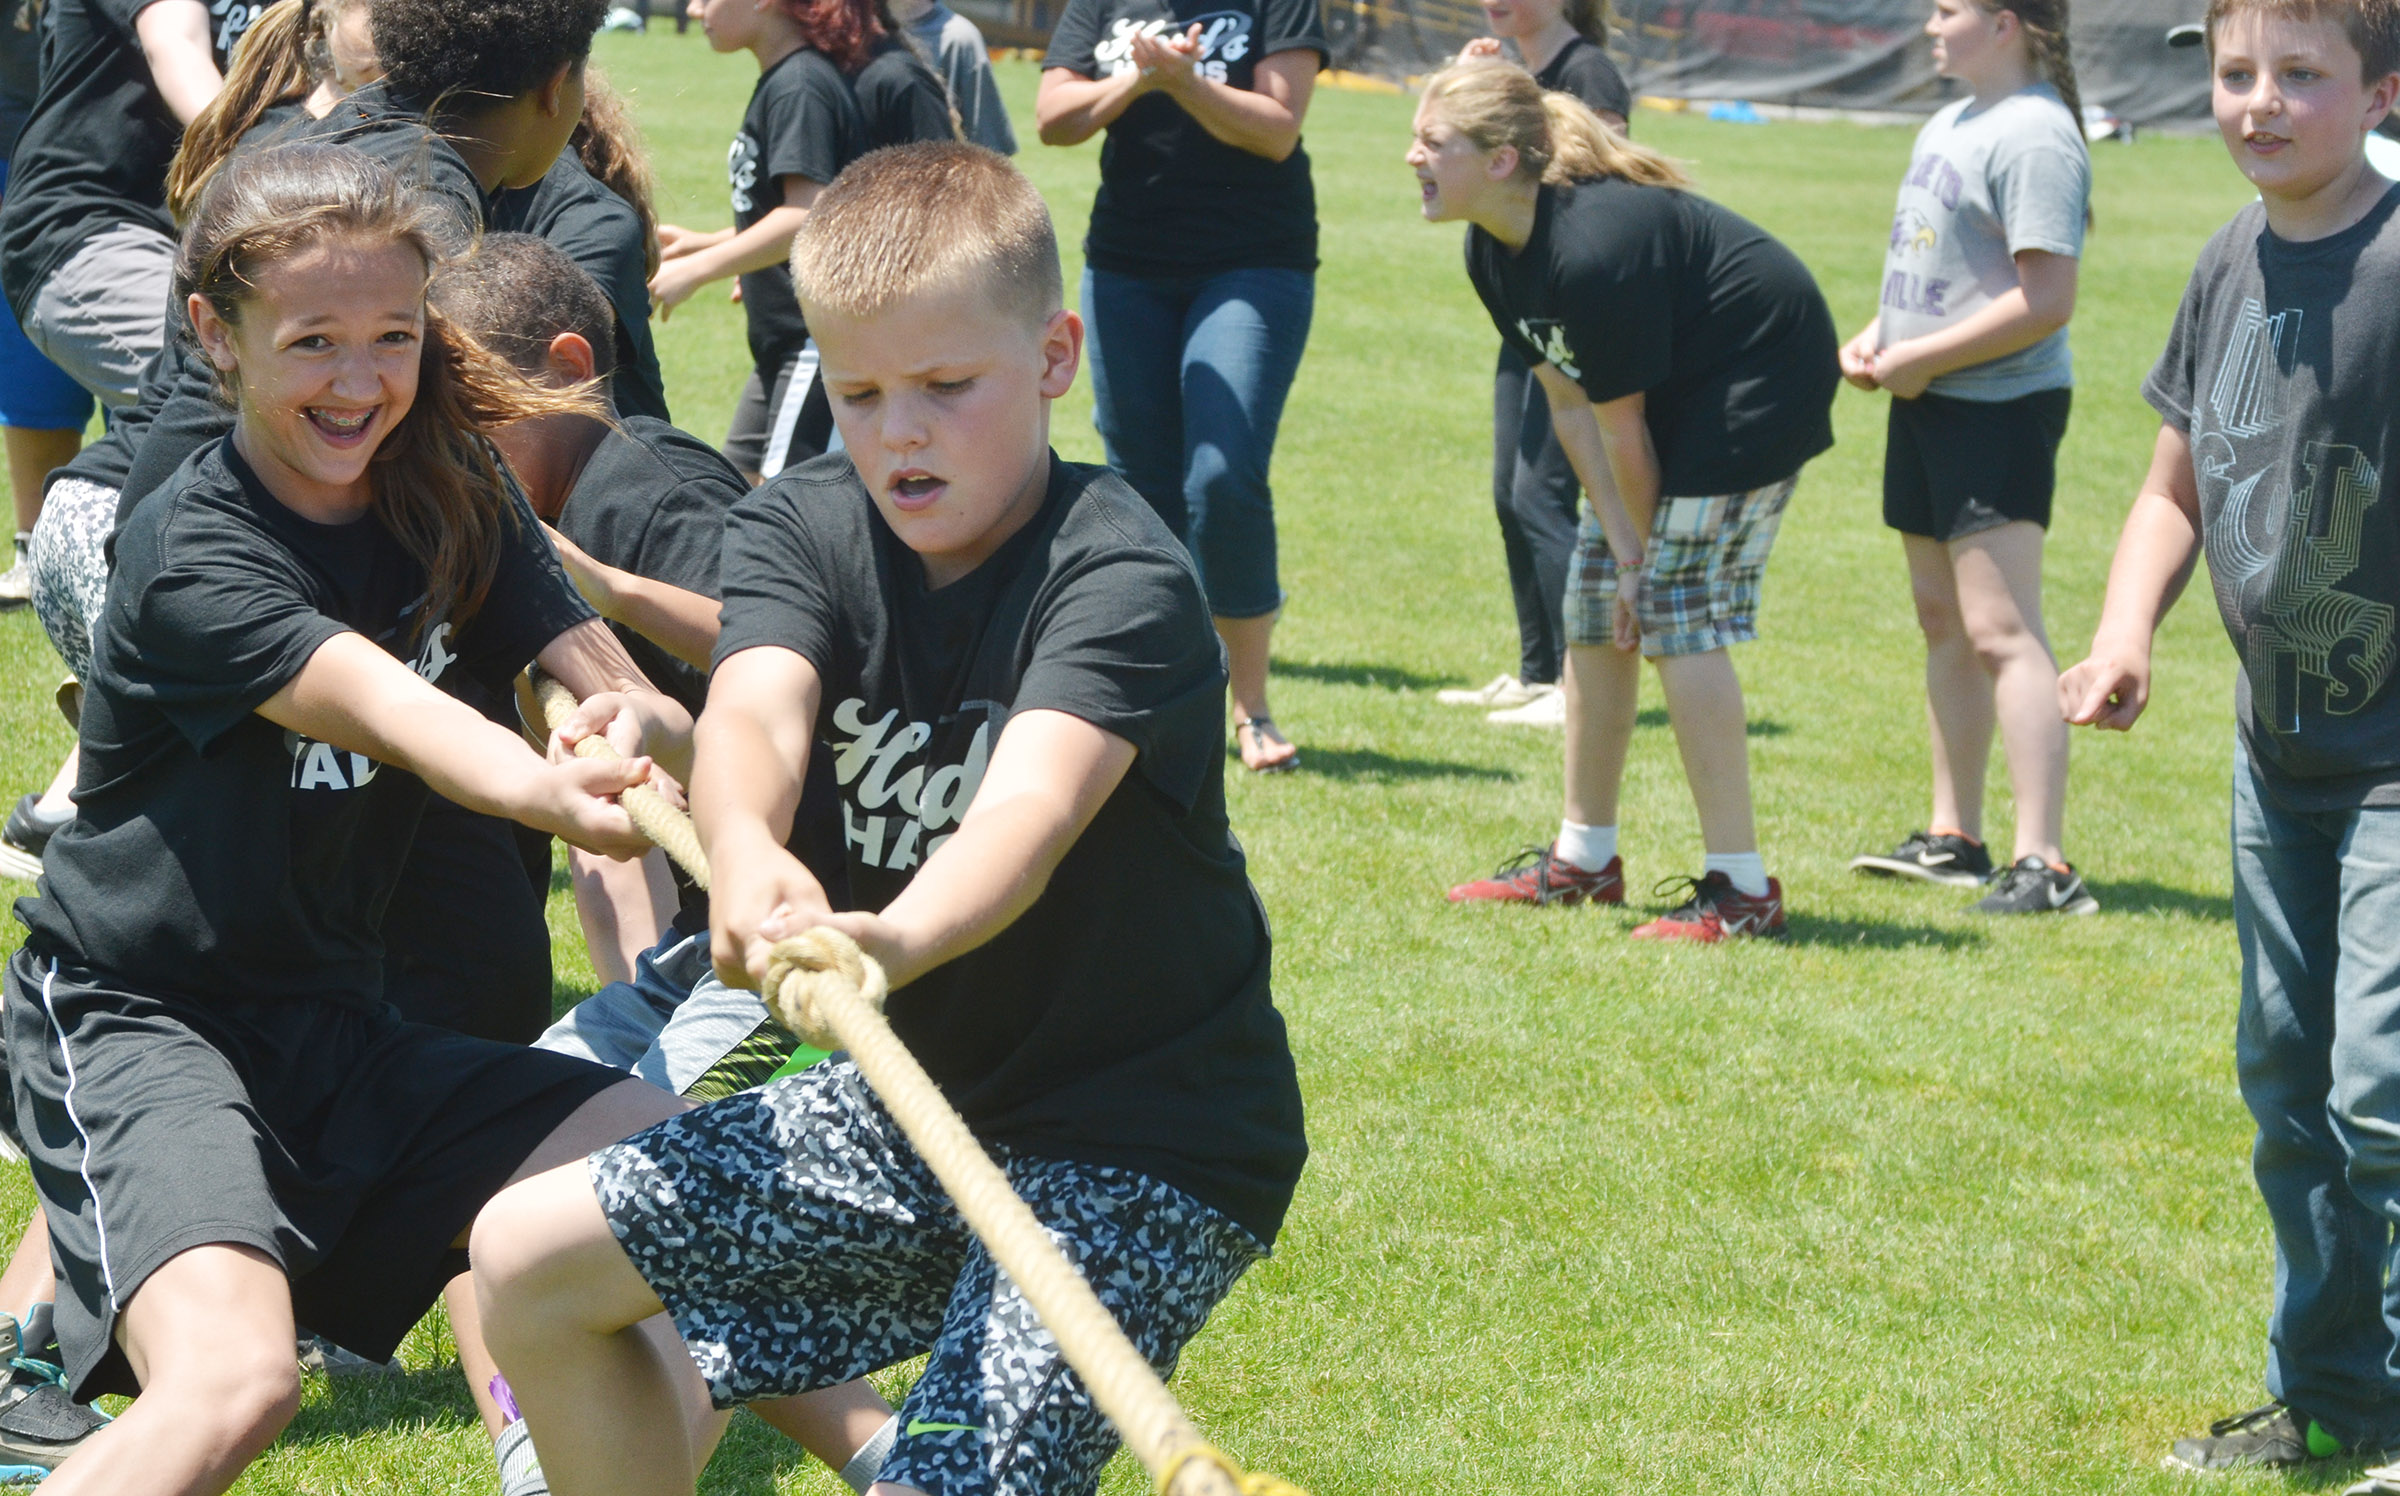 CMS sixth-graders Bri Hayes and Konner Forbis lead their classmates in tug of war.